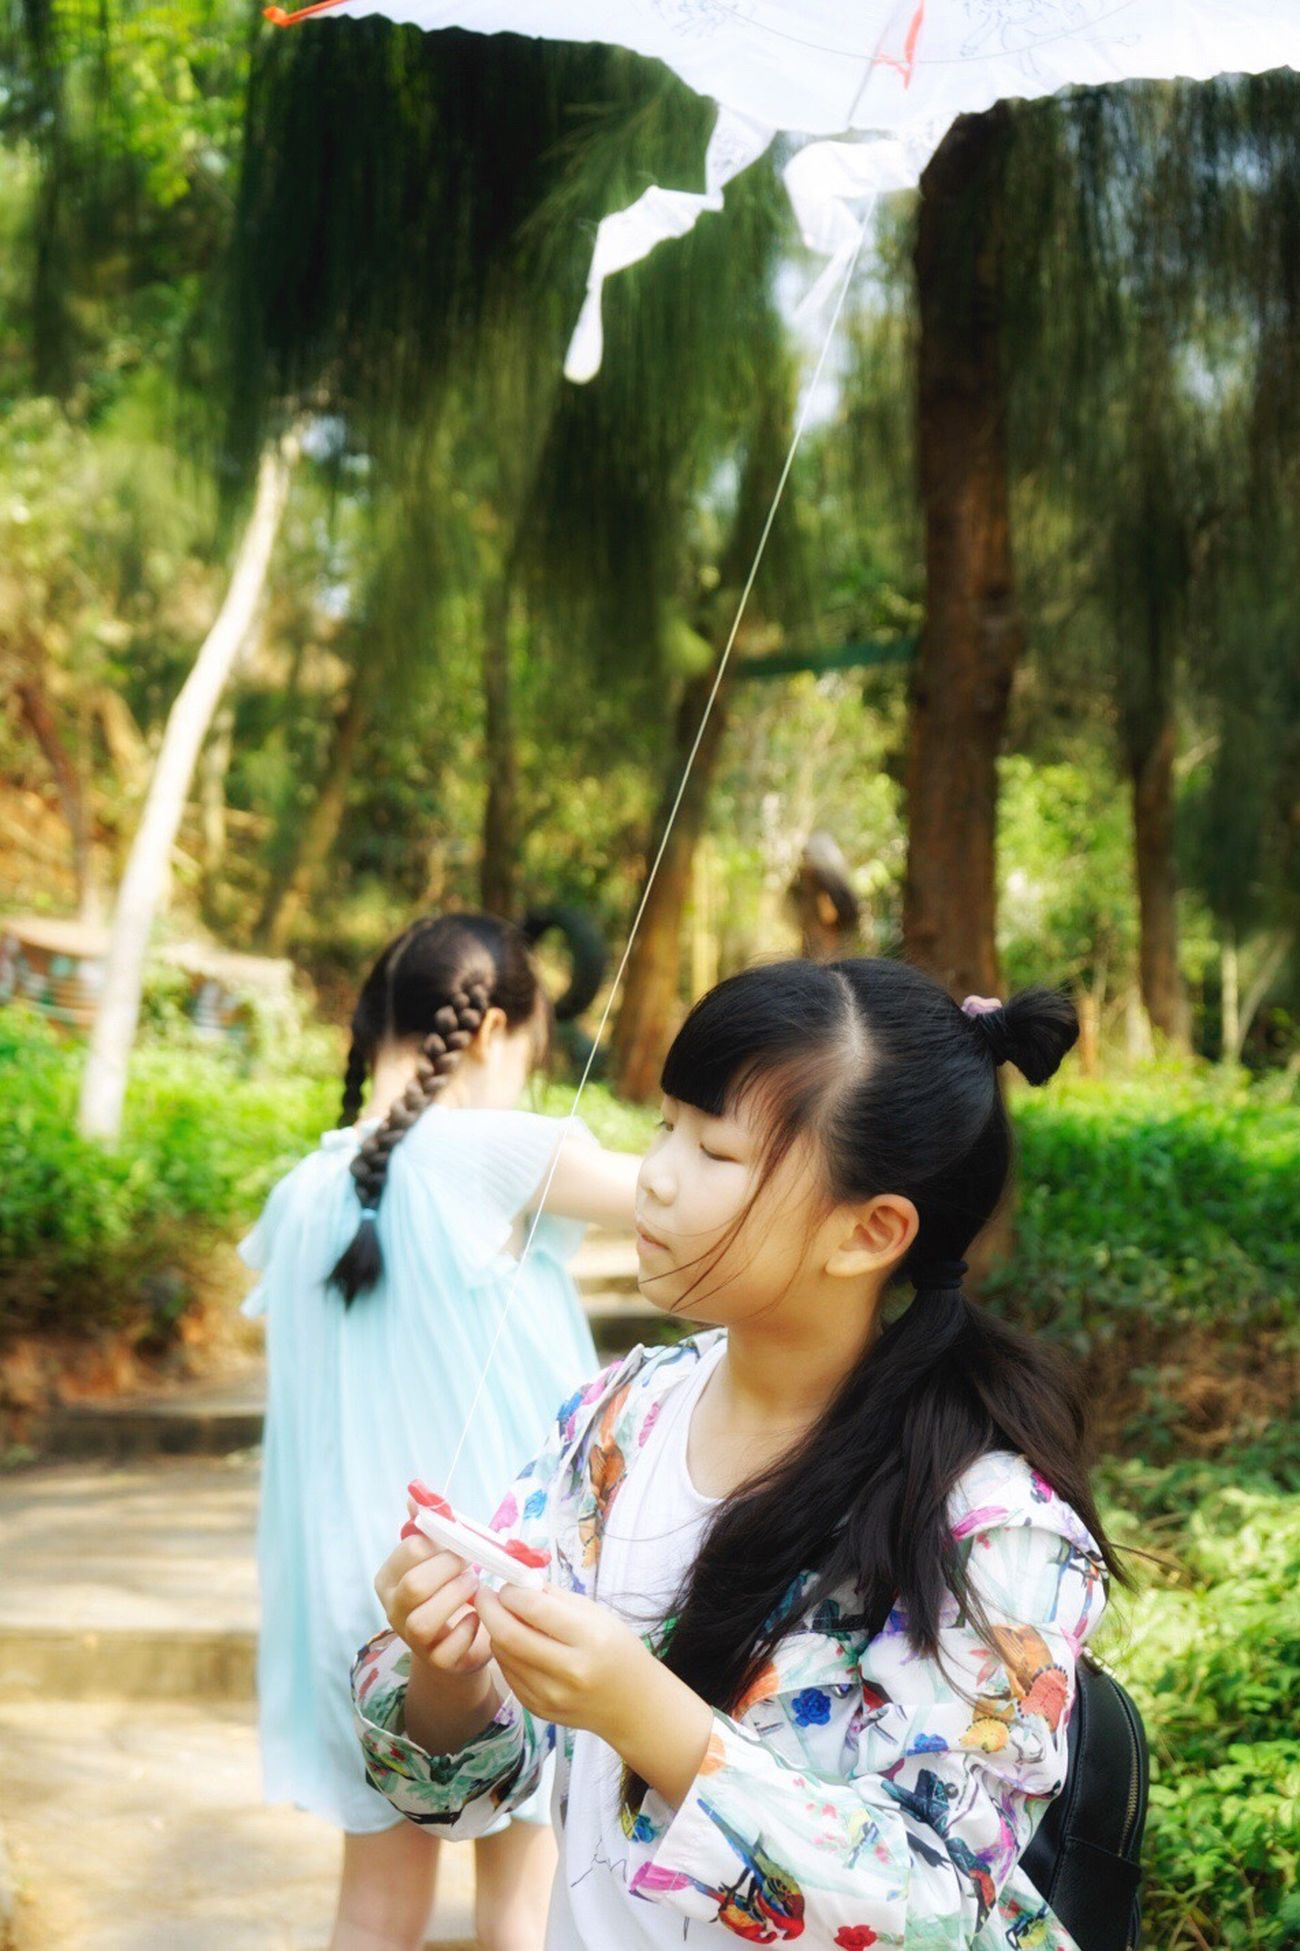 My little fairies❤️ Forest Women Young Adult Nature Young Women Standing Group Of People Females Flying A Kite Summer Smiling Outdoors People Day Tree Adult Adults Only Togetherness Childhood